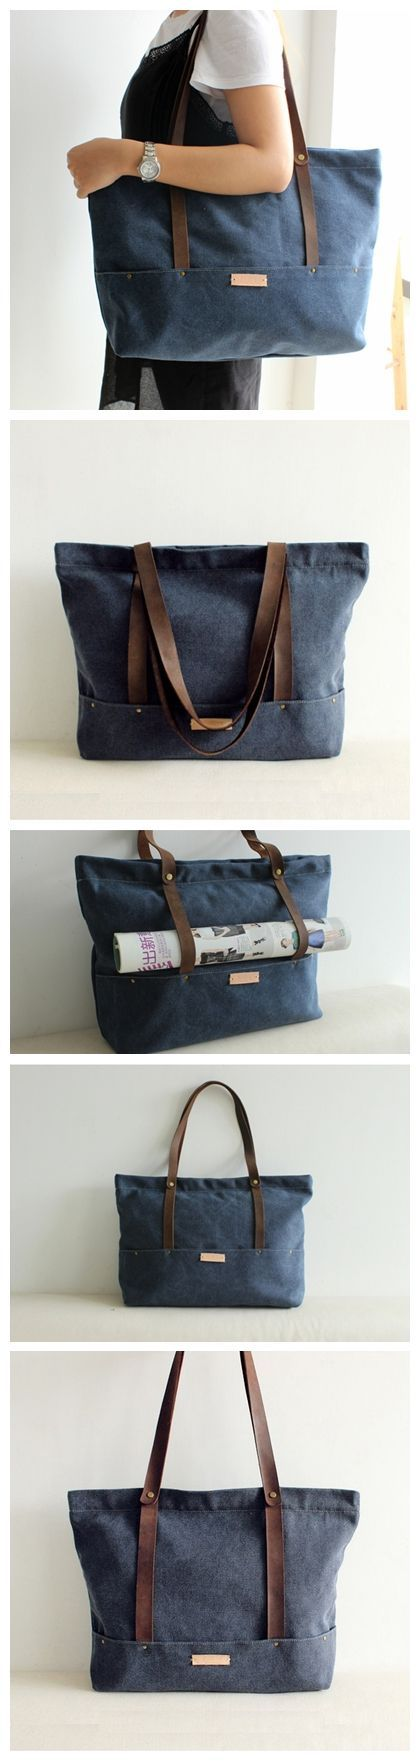 Handcrafted Waxed Canvas Tote Bag Diaper Bag Women's Fashion Handbag Shoulder Bag